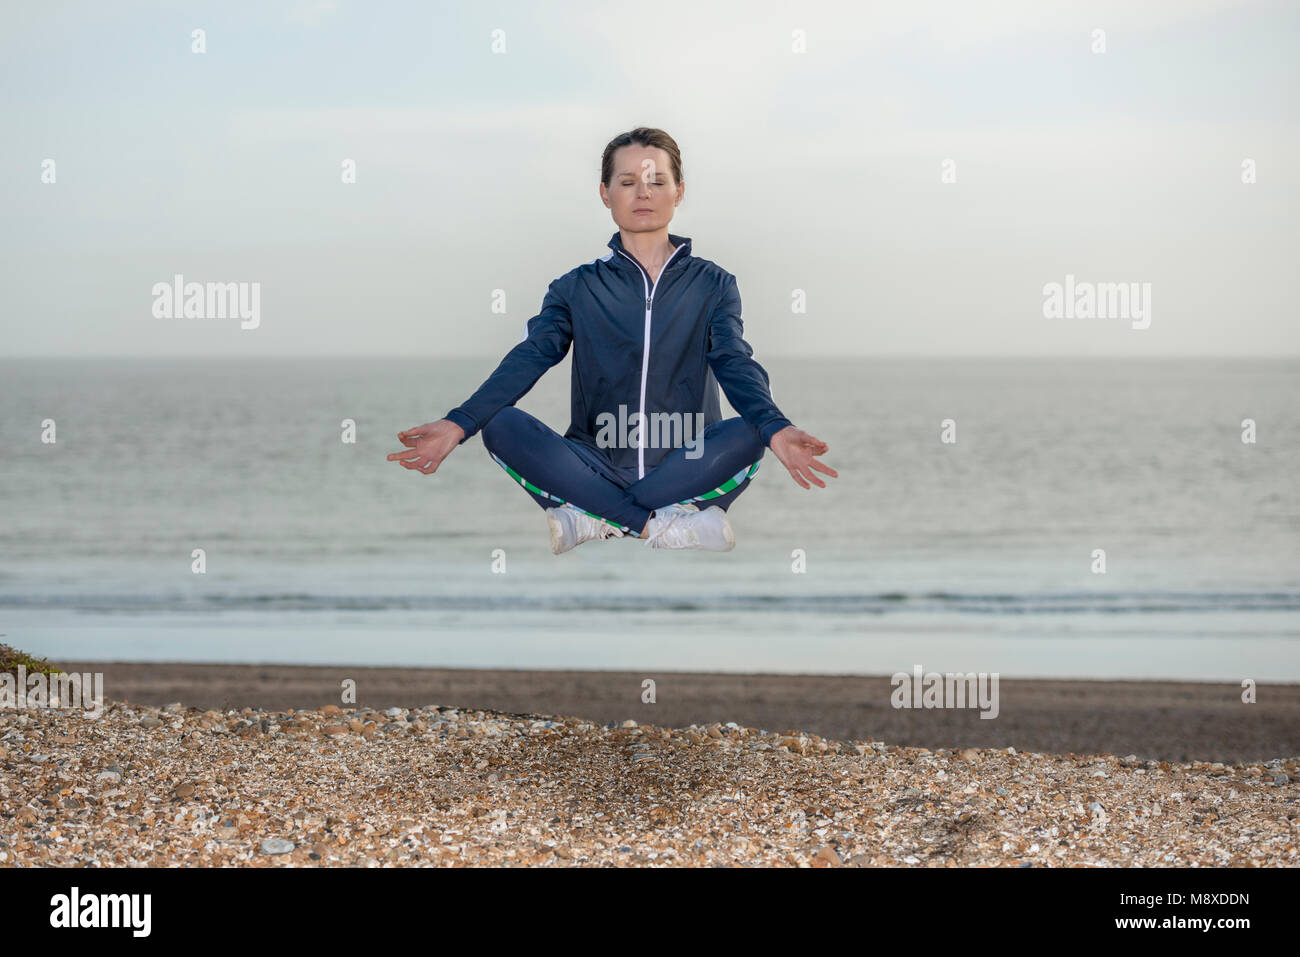 woman wearing a blue tracksuit in the lotus yoga position levitating above a beach - Stock Image